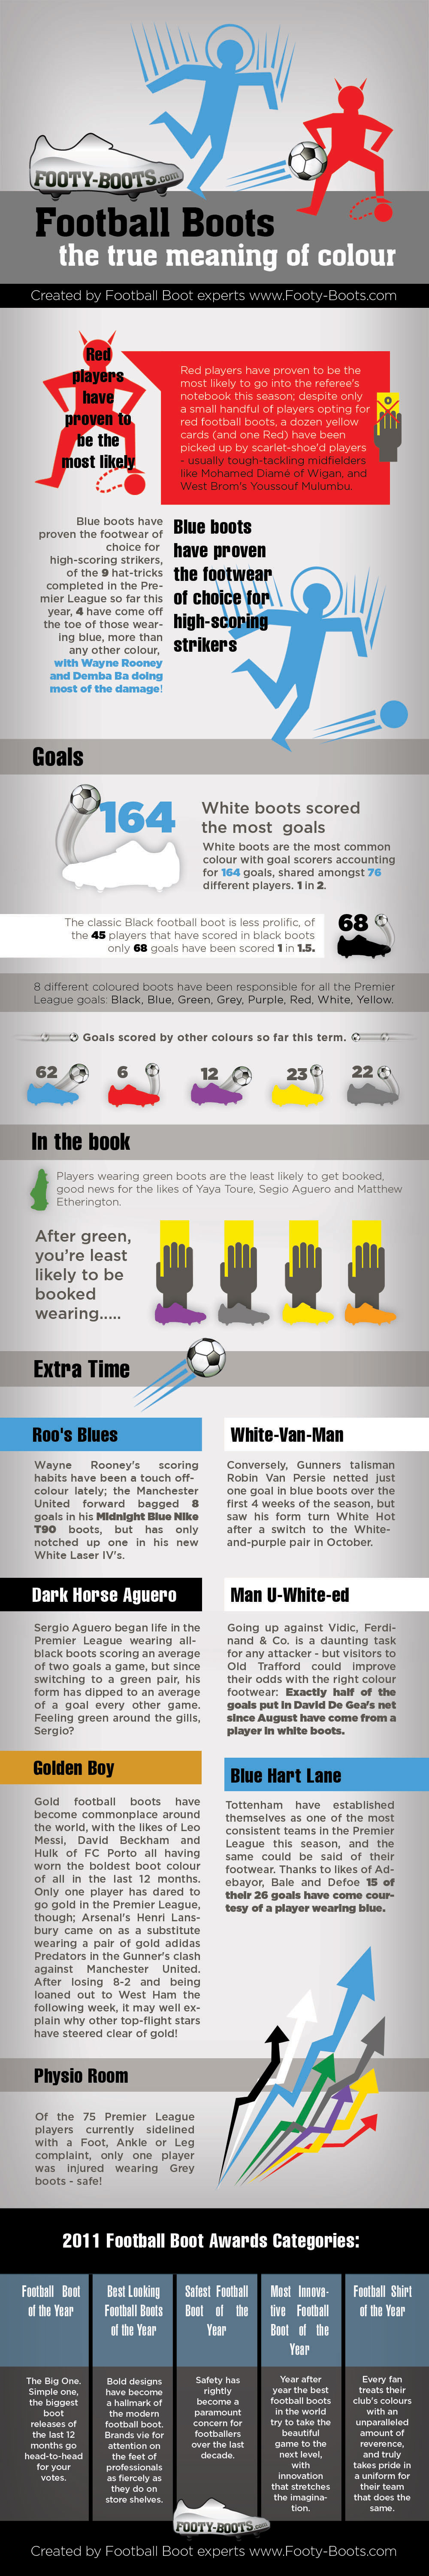 the-real-meaning-of-football-boot-colour_50f03871d2c9f